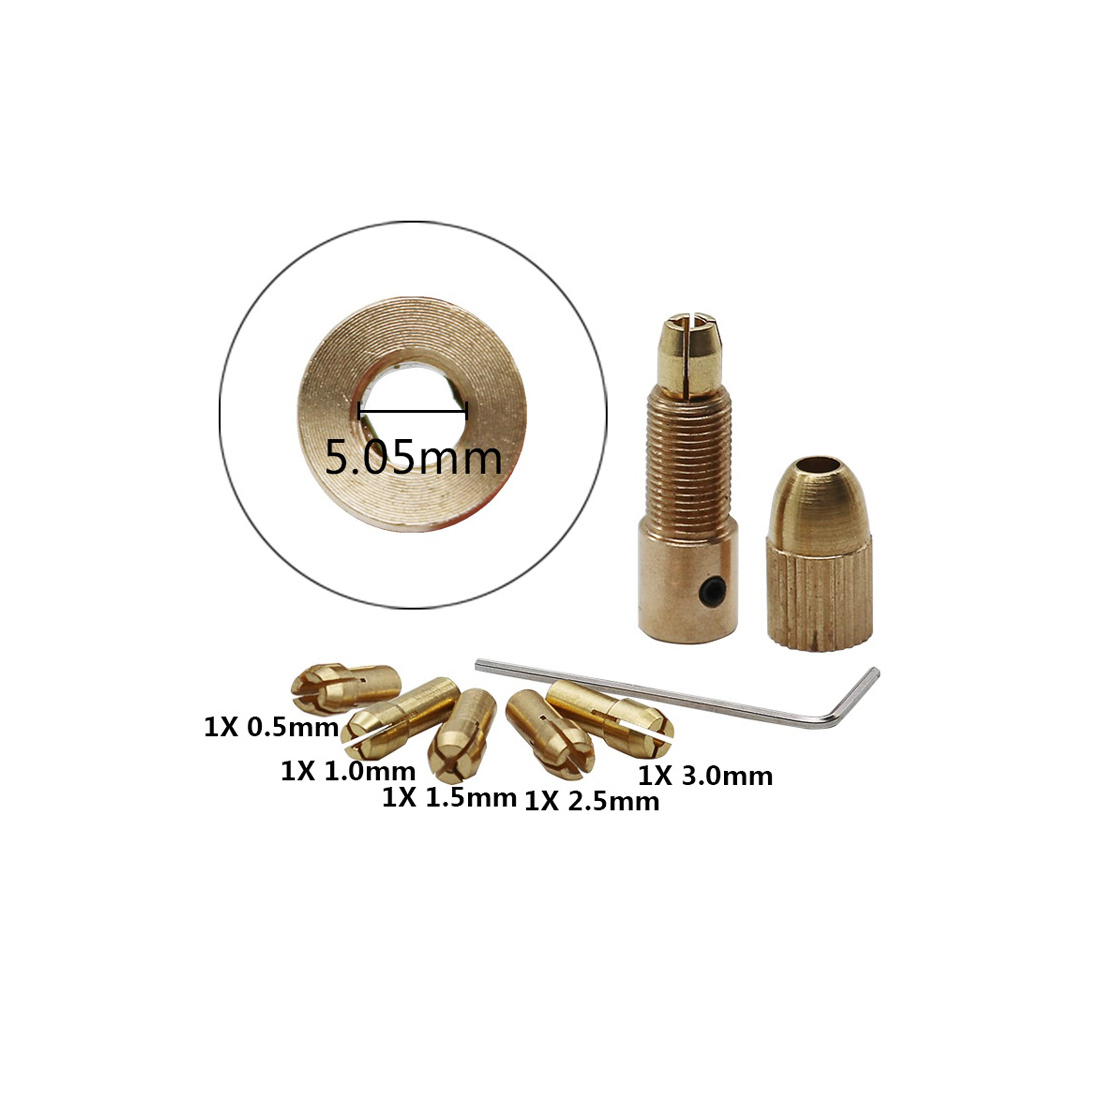 Electric Drill Bit Collet 7pcs/Set 0.5-3mm Small Micro Twist Drill Chuck Set a cartridge for a drill for dremel accessories